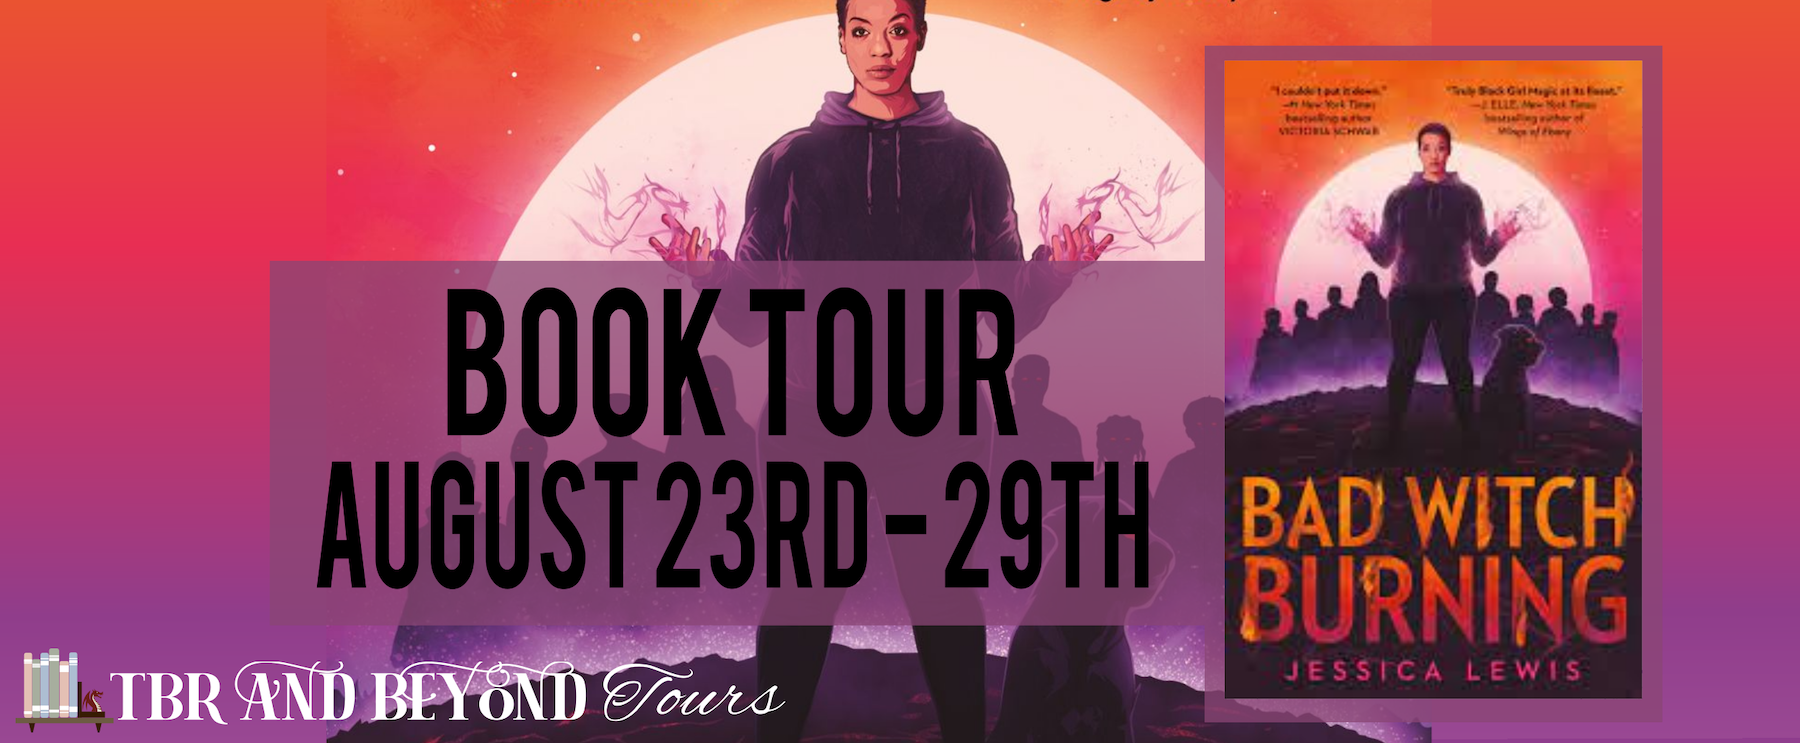 Bad Witch Burning tour banner